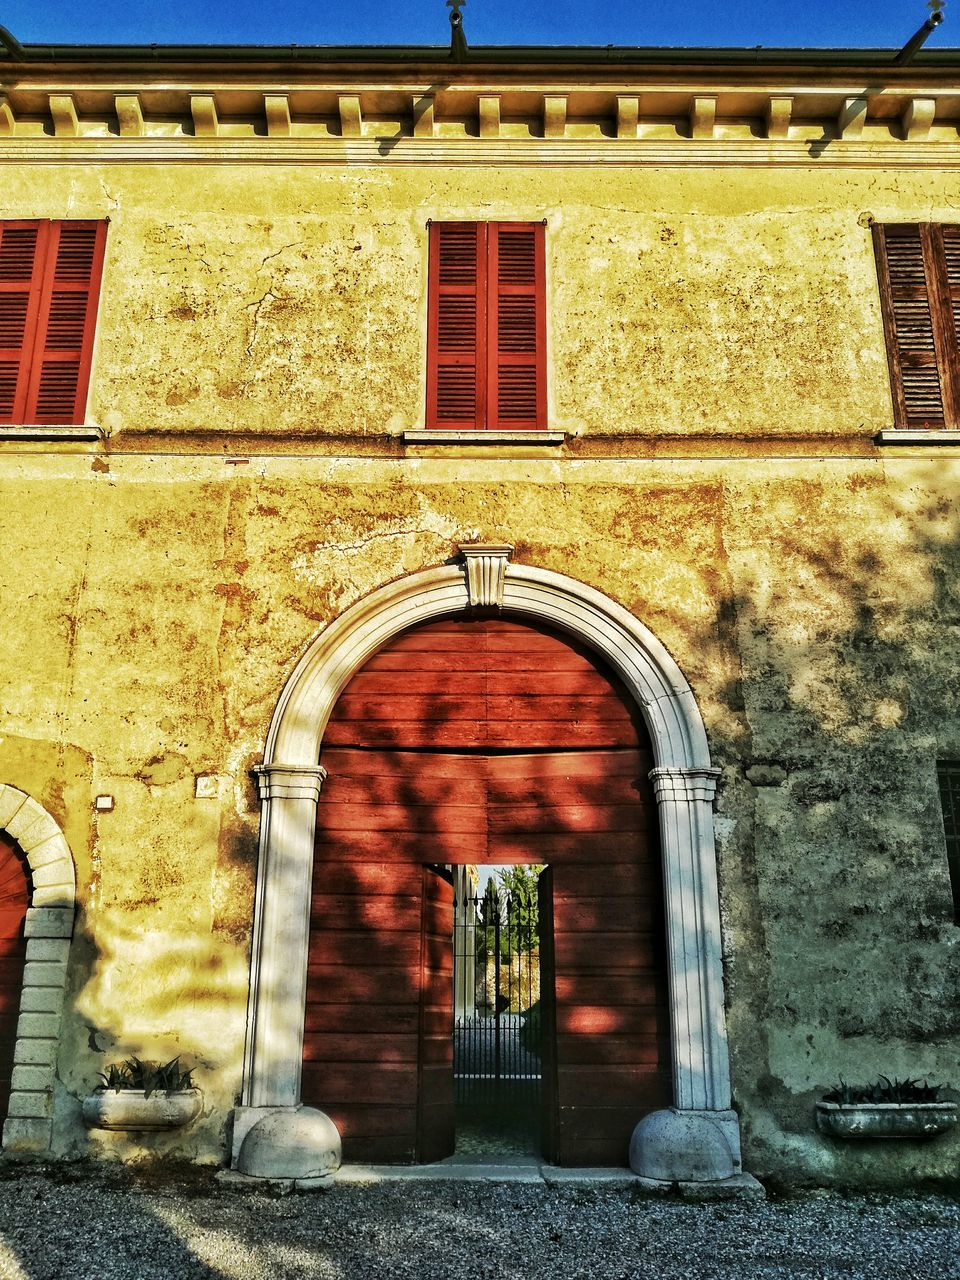 architecture, door, entrance, building exterior, built structure, window, arch, doorway, outdoors, day, entry, no people